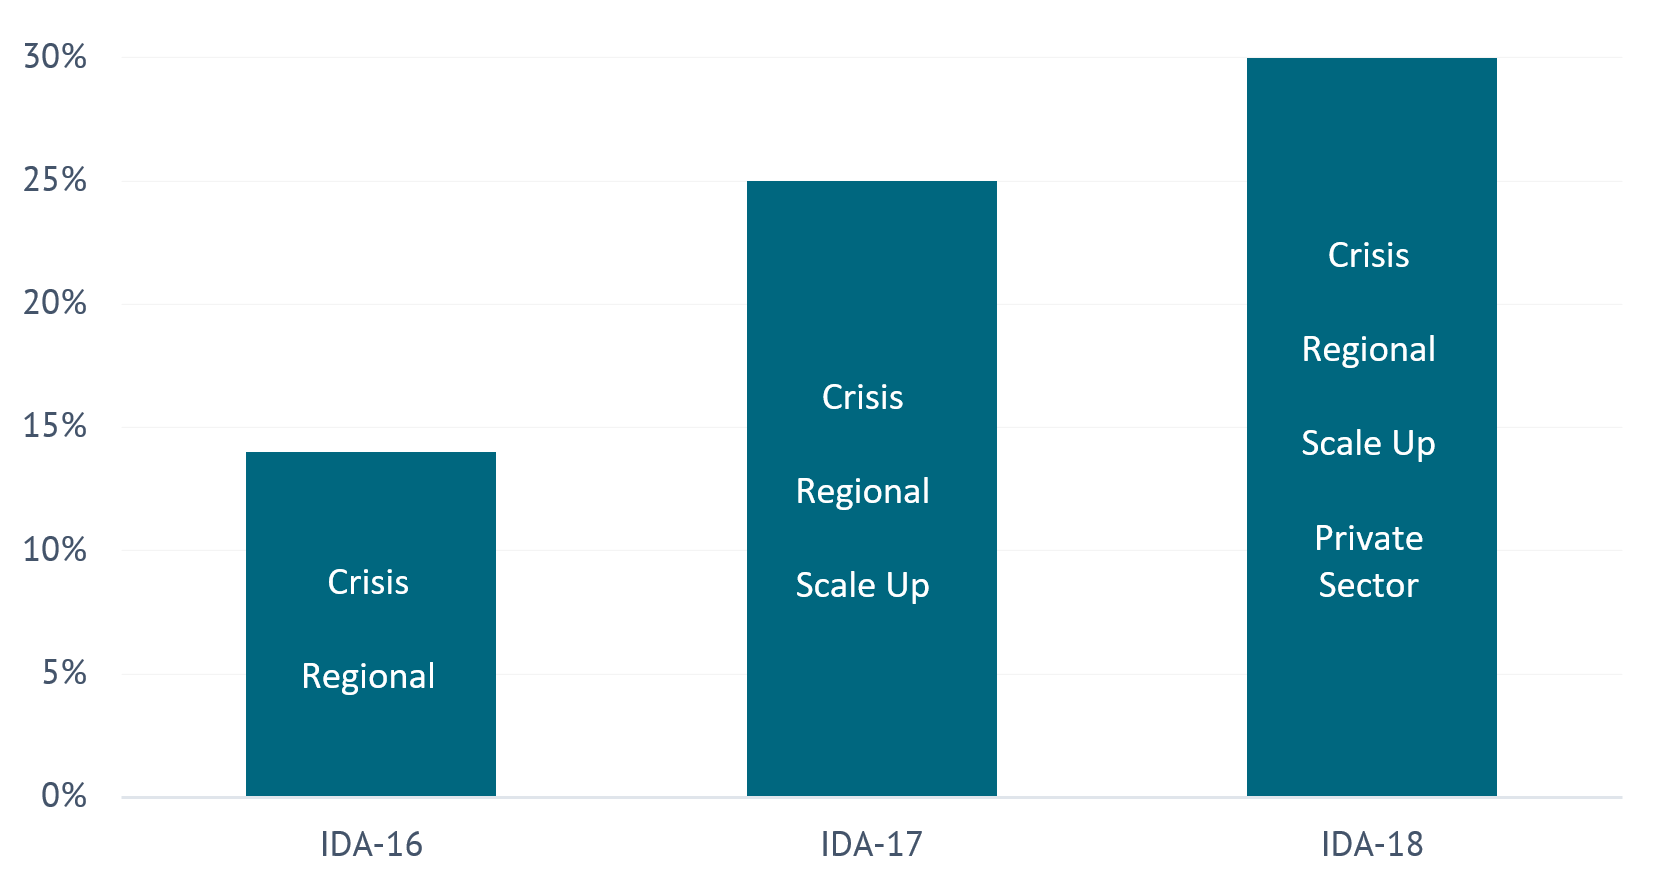 Chart showing different set asides with IDA for various purposes